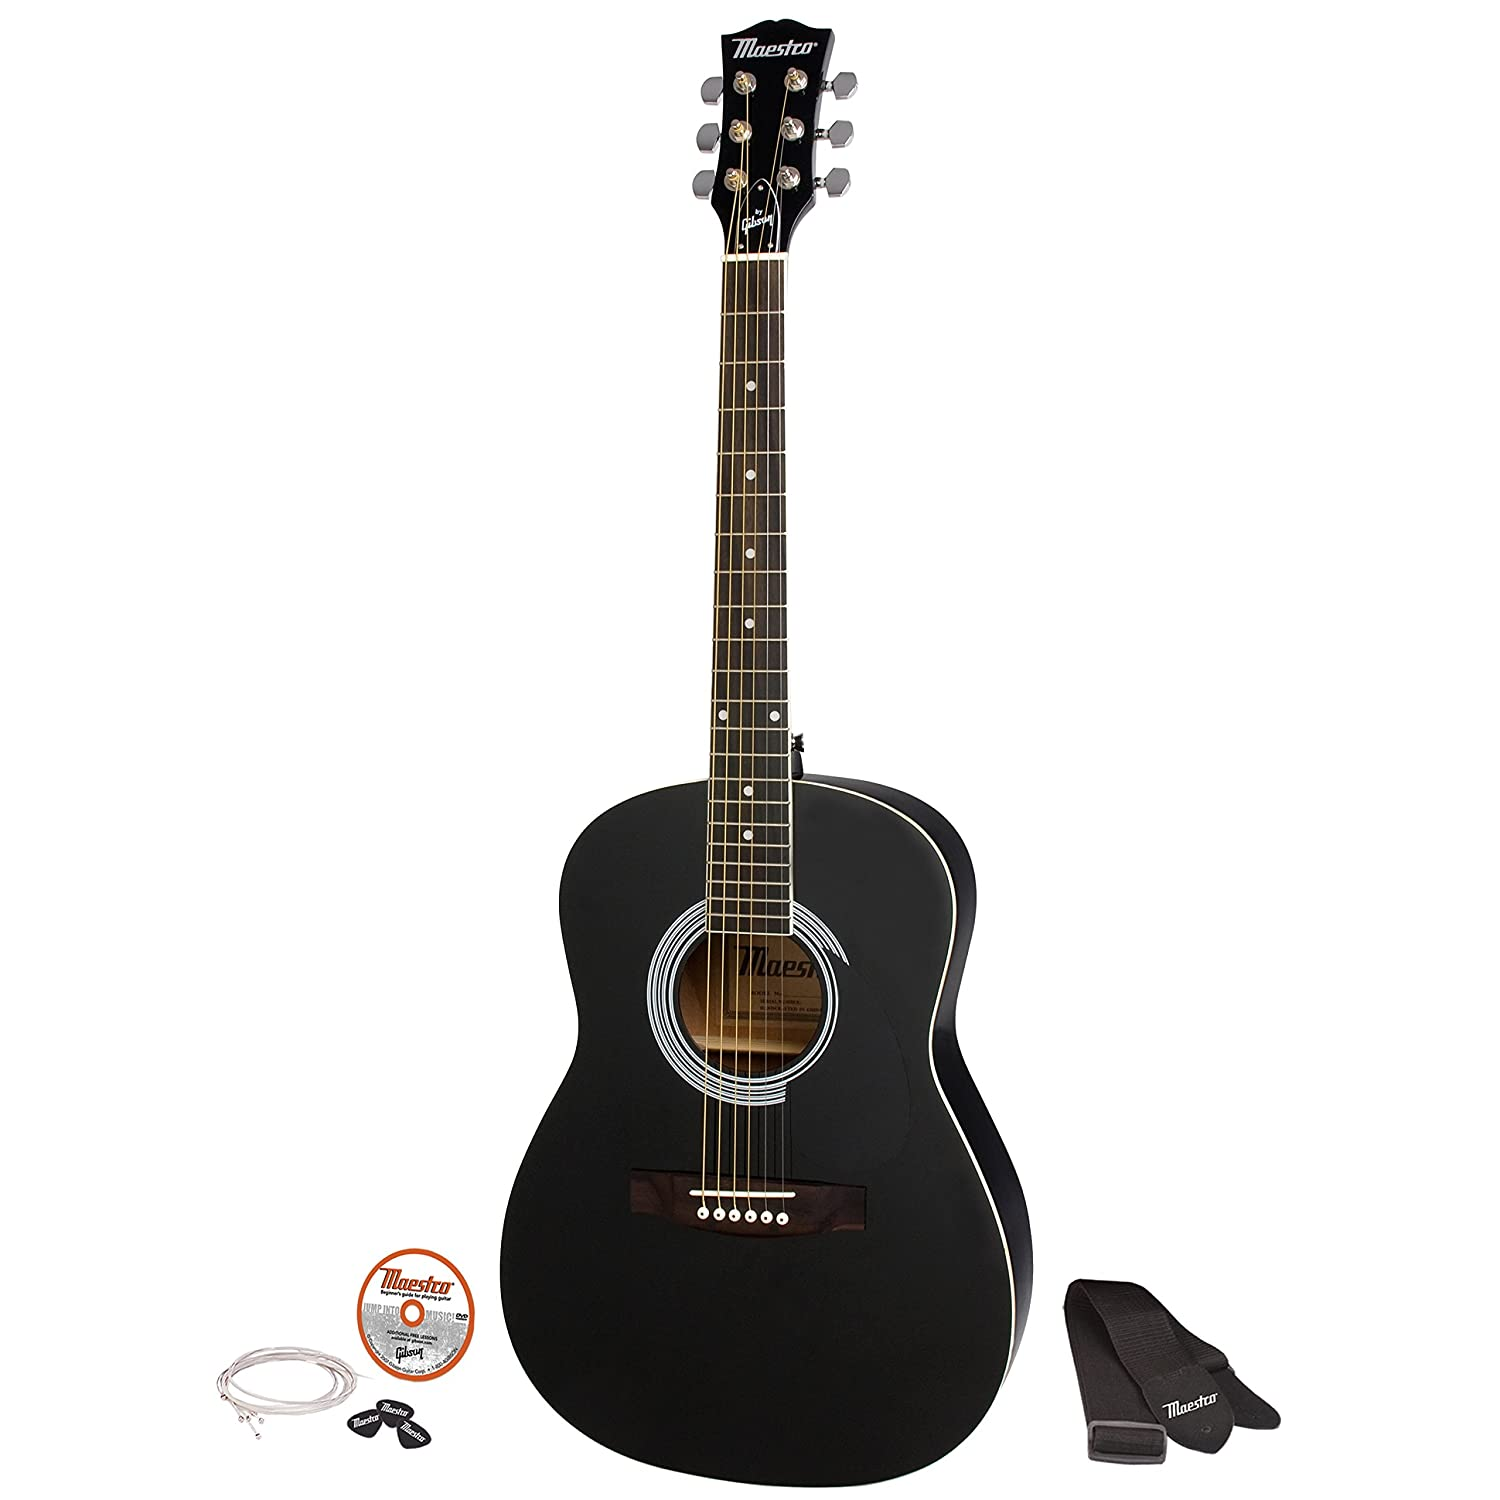 gibson maestro 38 parlor size acoustic guitar ebony with accessories ebay. Black Bedroom Furniture Sets. Home Design Ideas